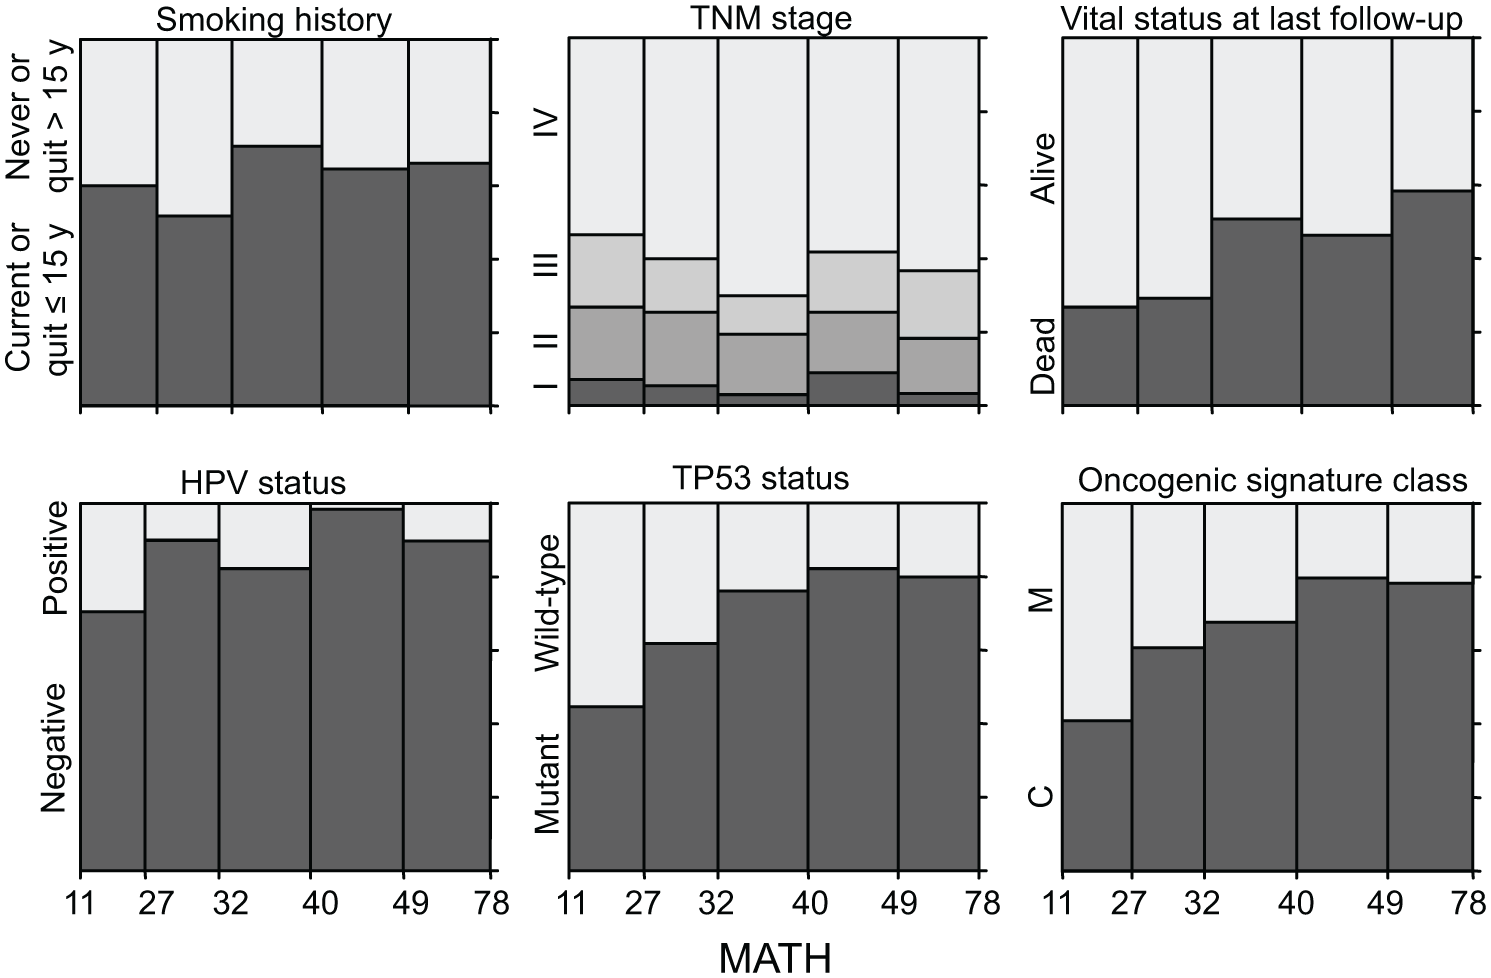 Relations of selected clinical and molecular characteristics to MATH values.